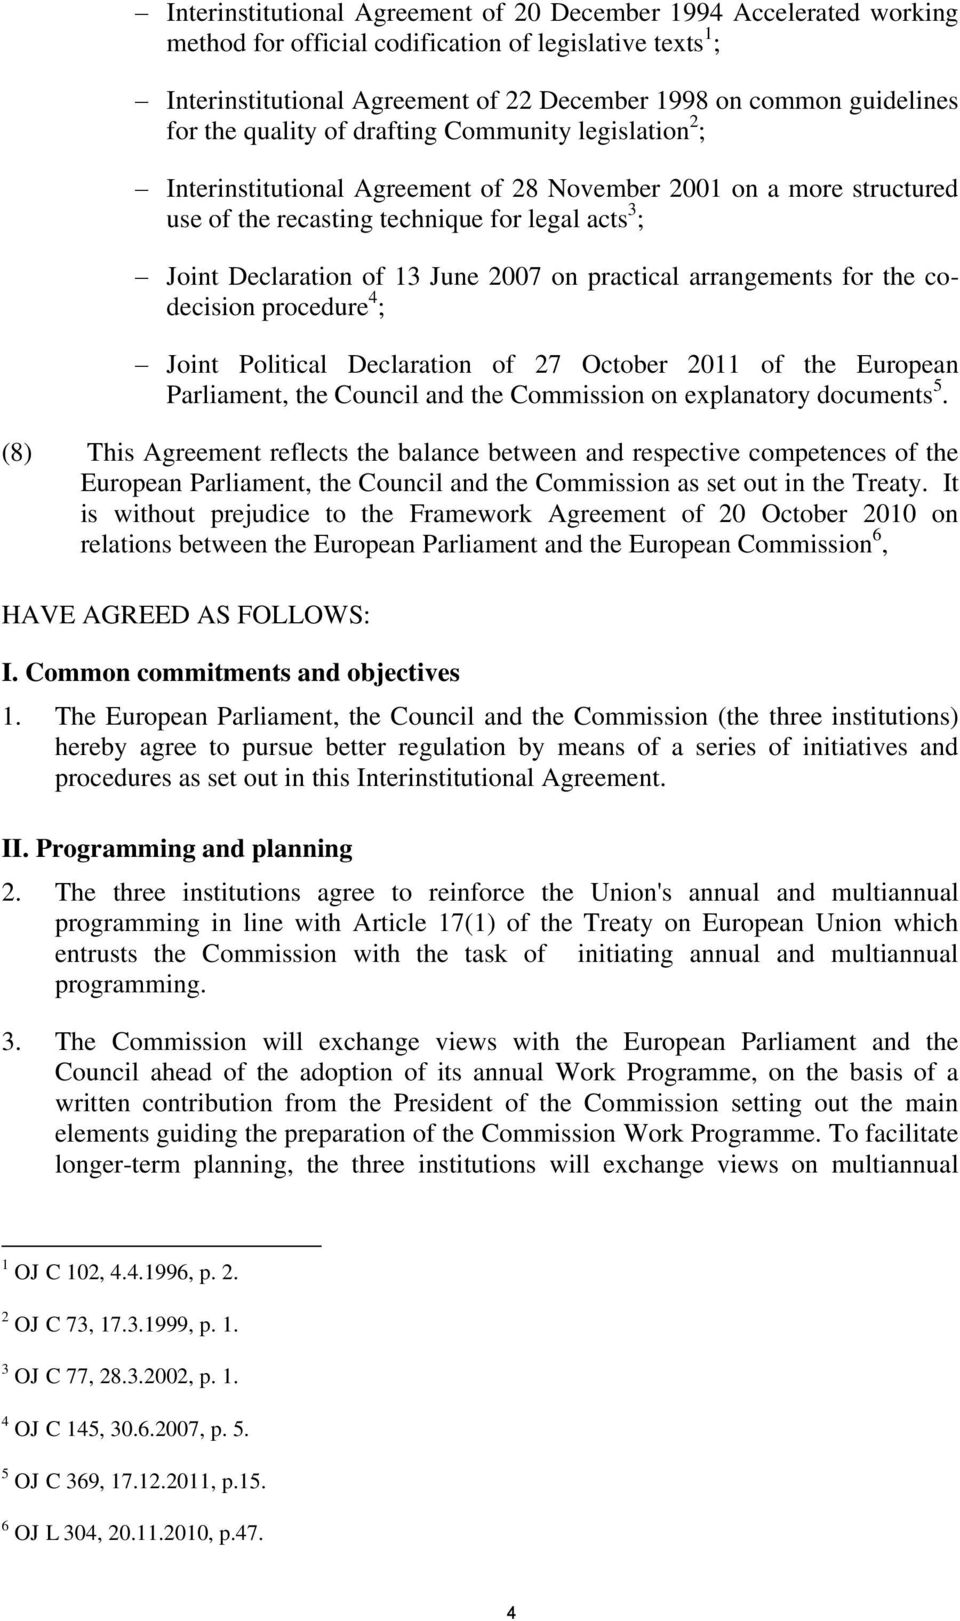 June 2007 on practical arrangements for the codecision procedure 4 ; Joint Political Declaration of 27 October 2011 of the European Parliament, the Council and the Commission on explanatory documents